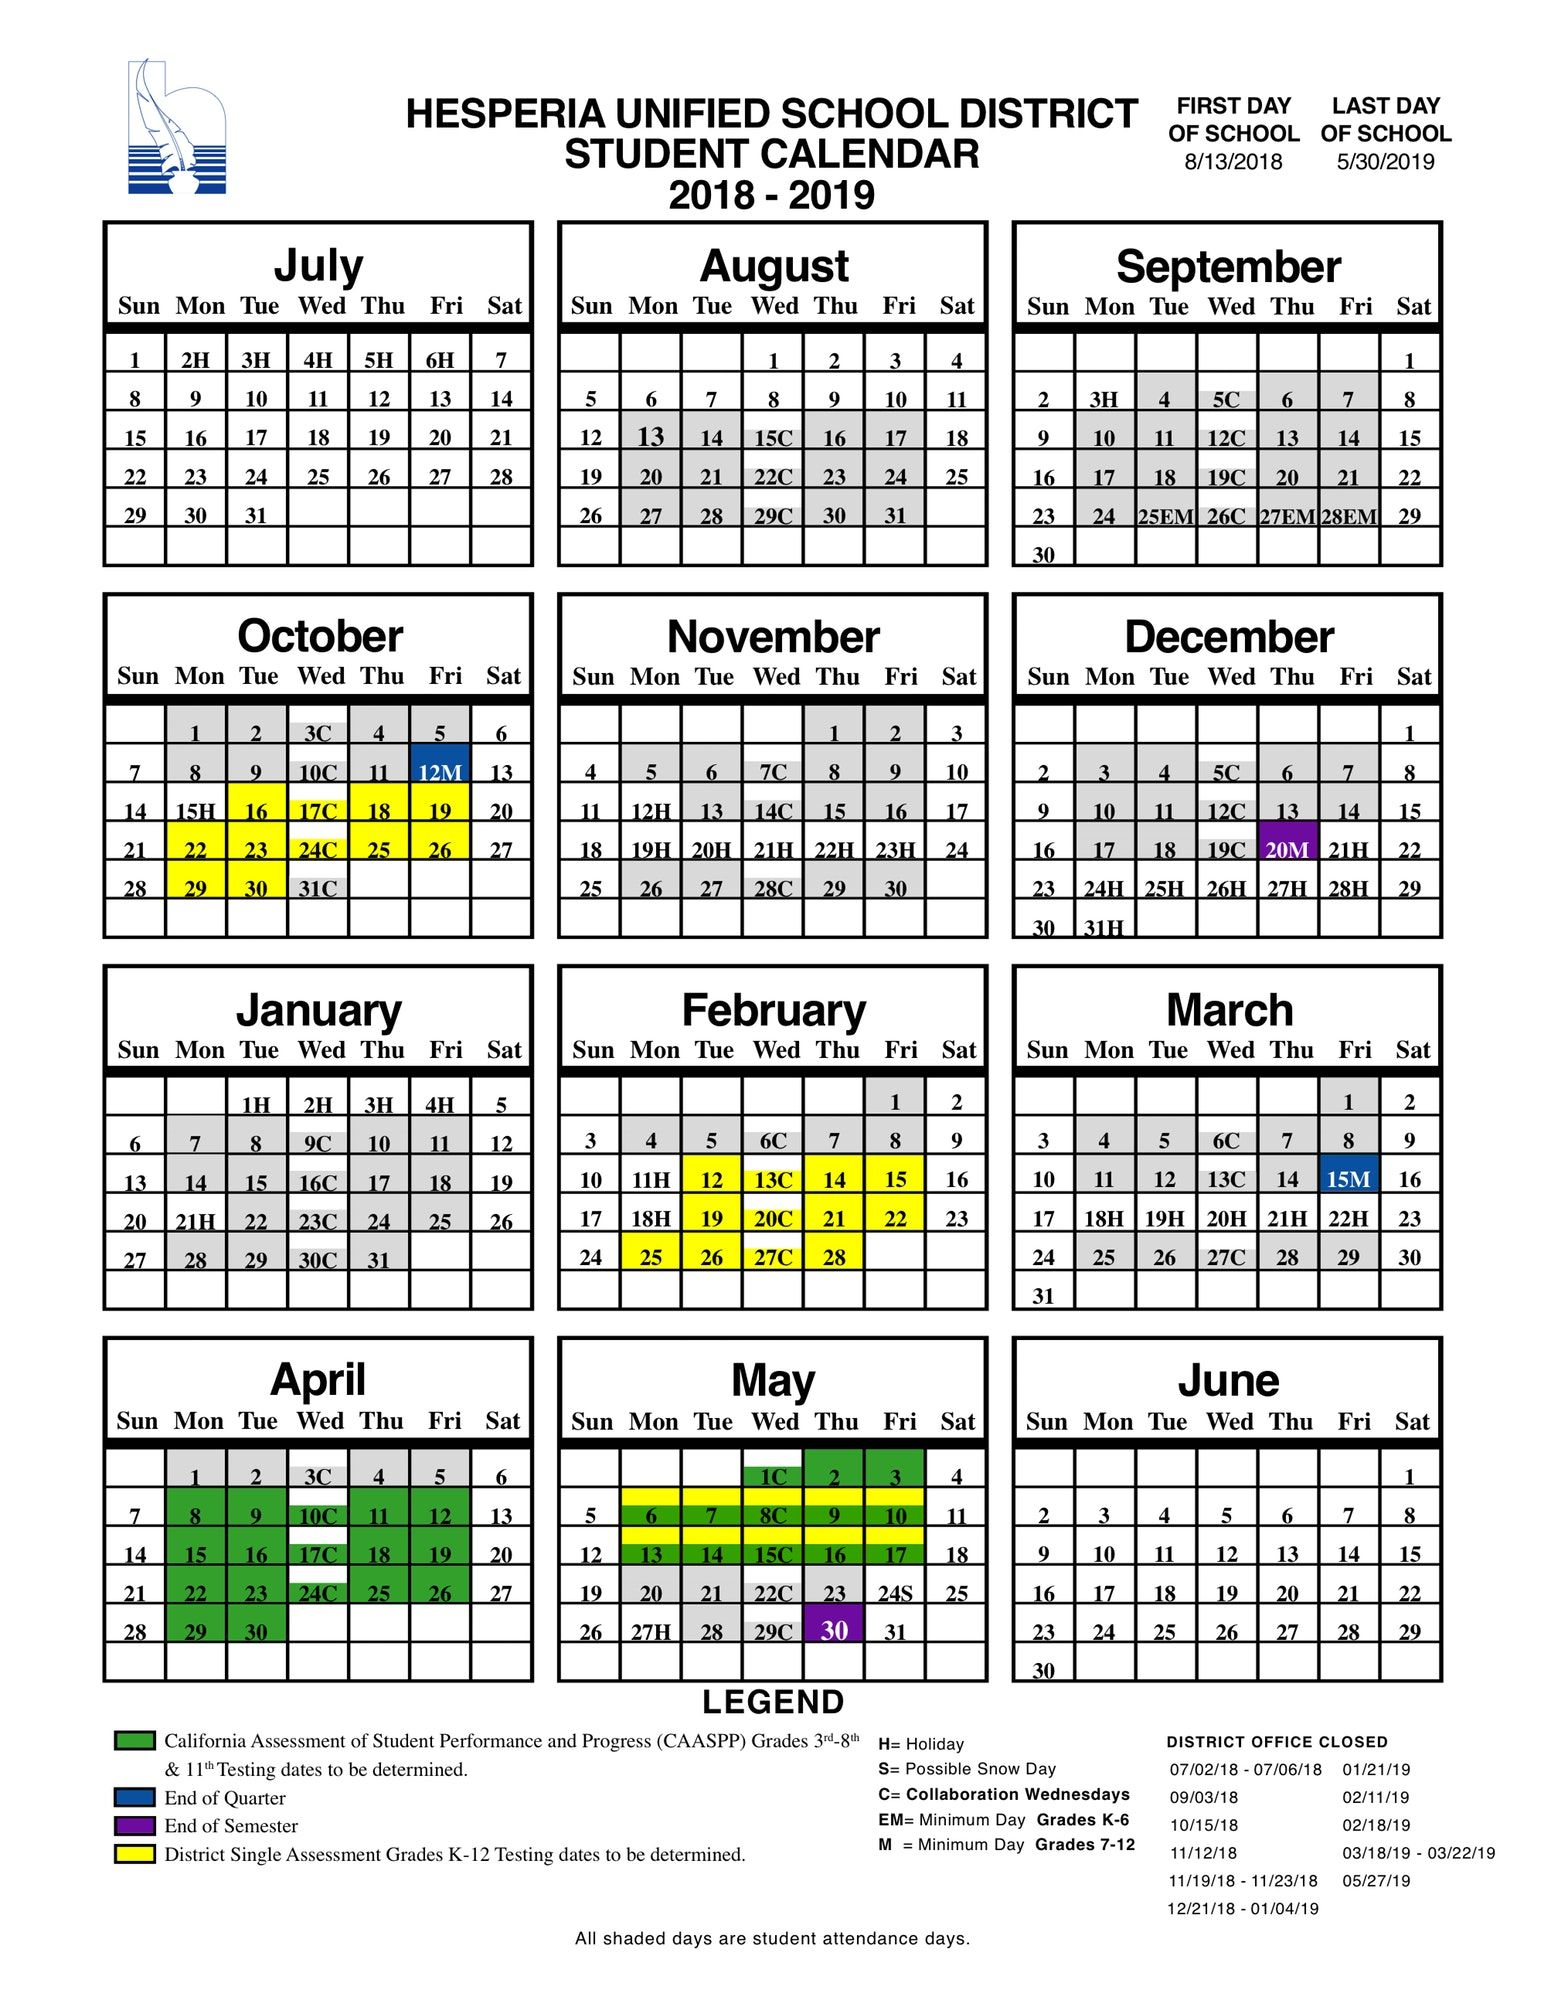 Davis School District Calendar 2020-21 Hesperia Unified School District Student Calendar 18/19   Hesperia